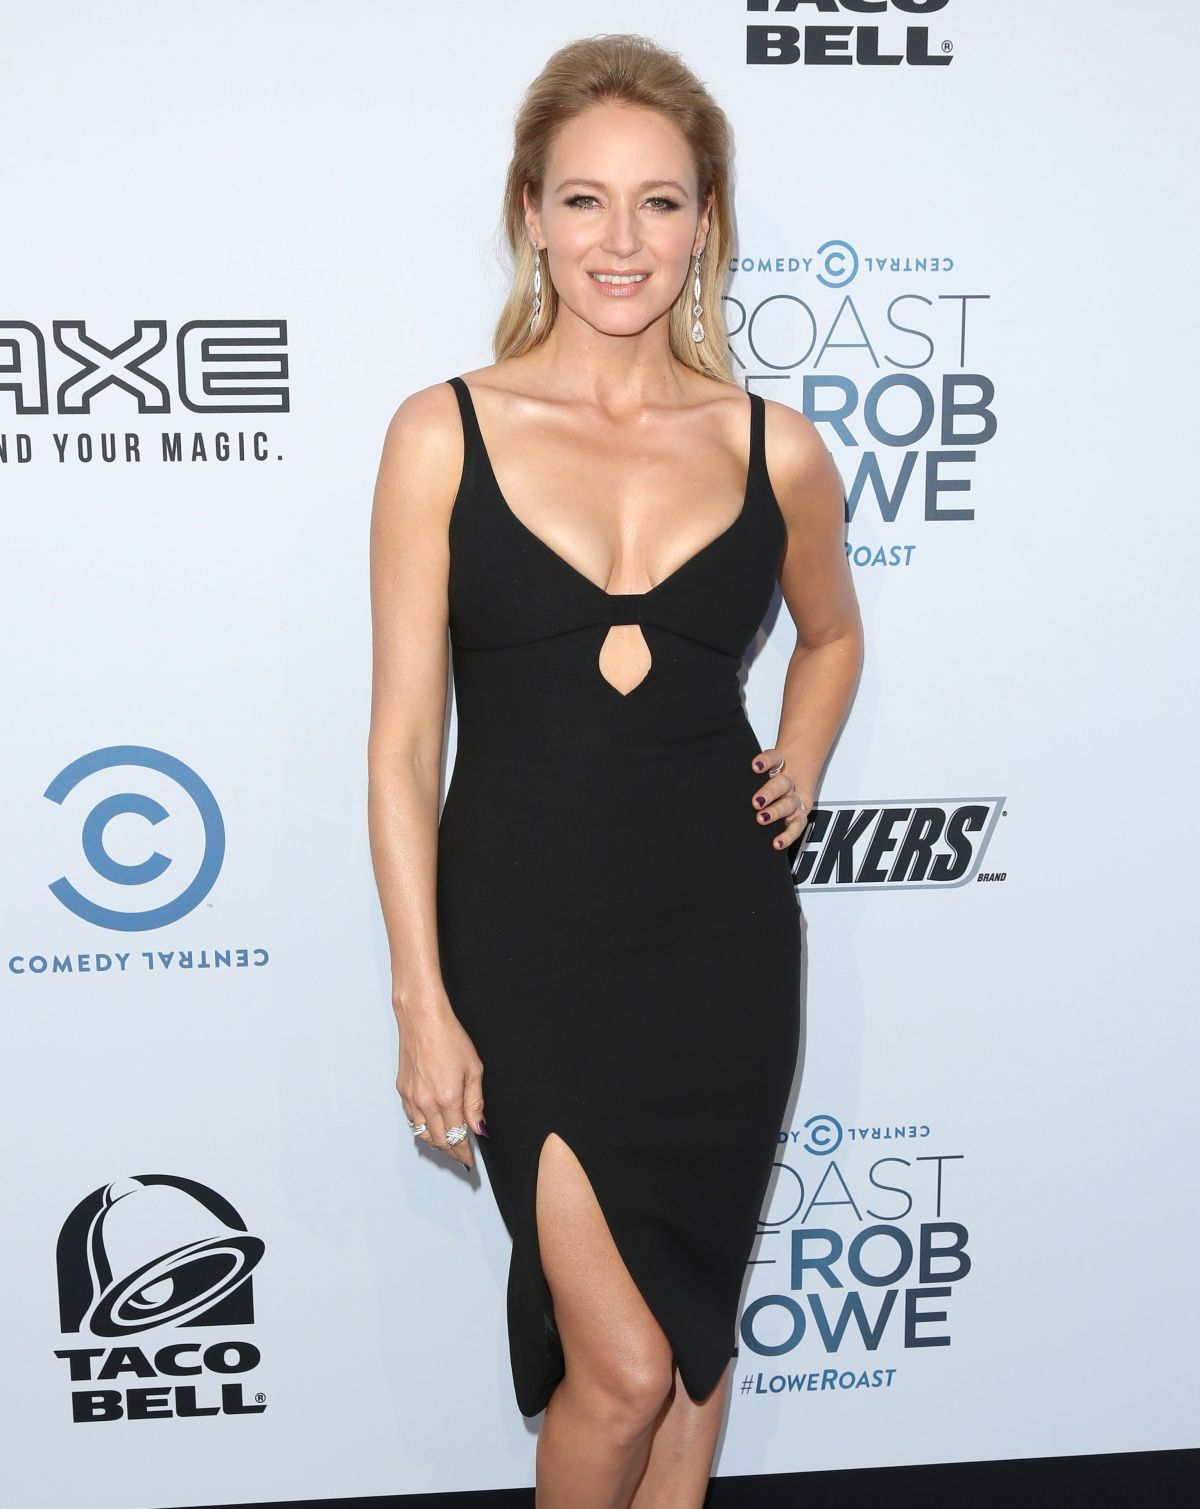 Jewel Kilcher At The Comedy Central Roast Of Rob Lowe In